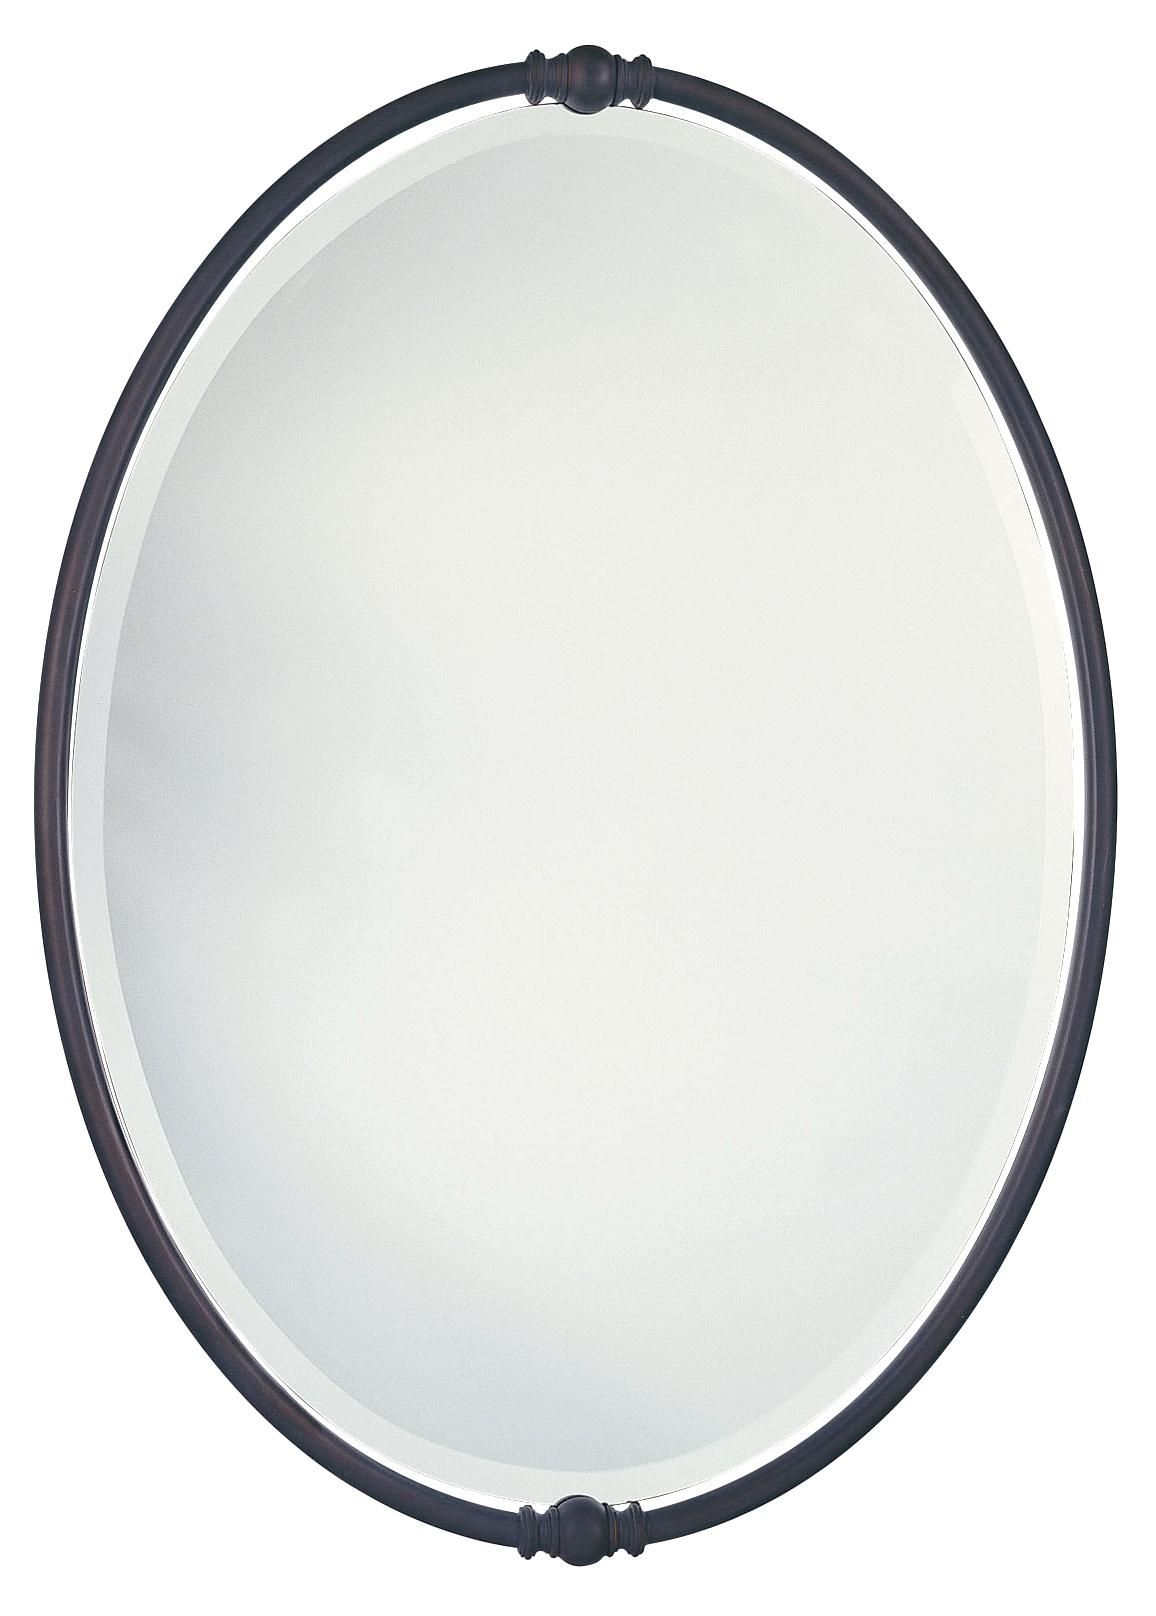 Murray Feiss Boulevard Collection Oval Wall Mirror -